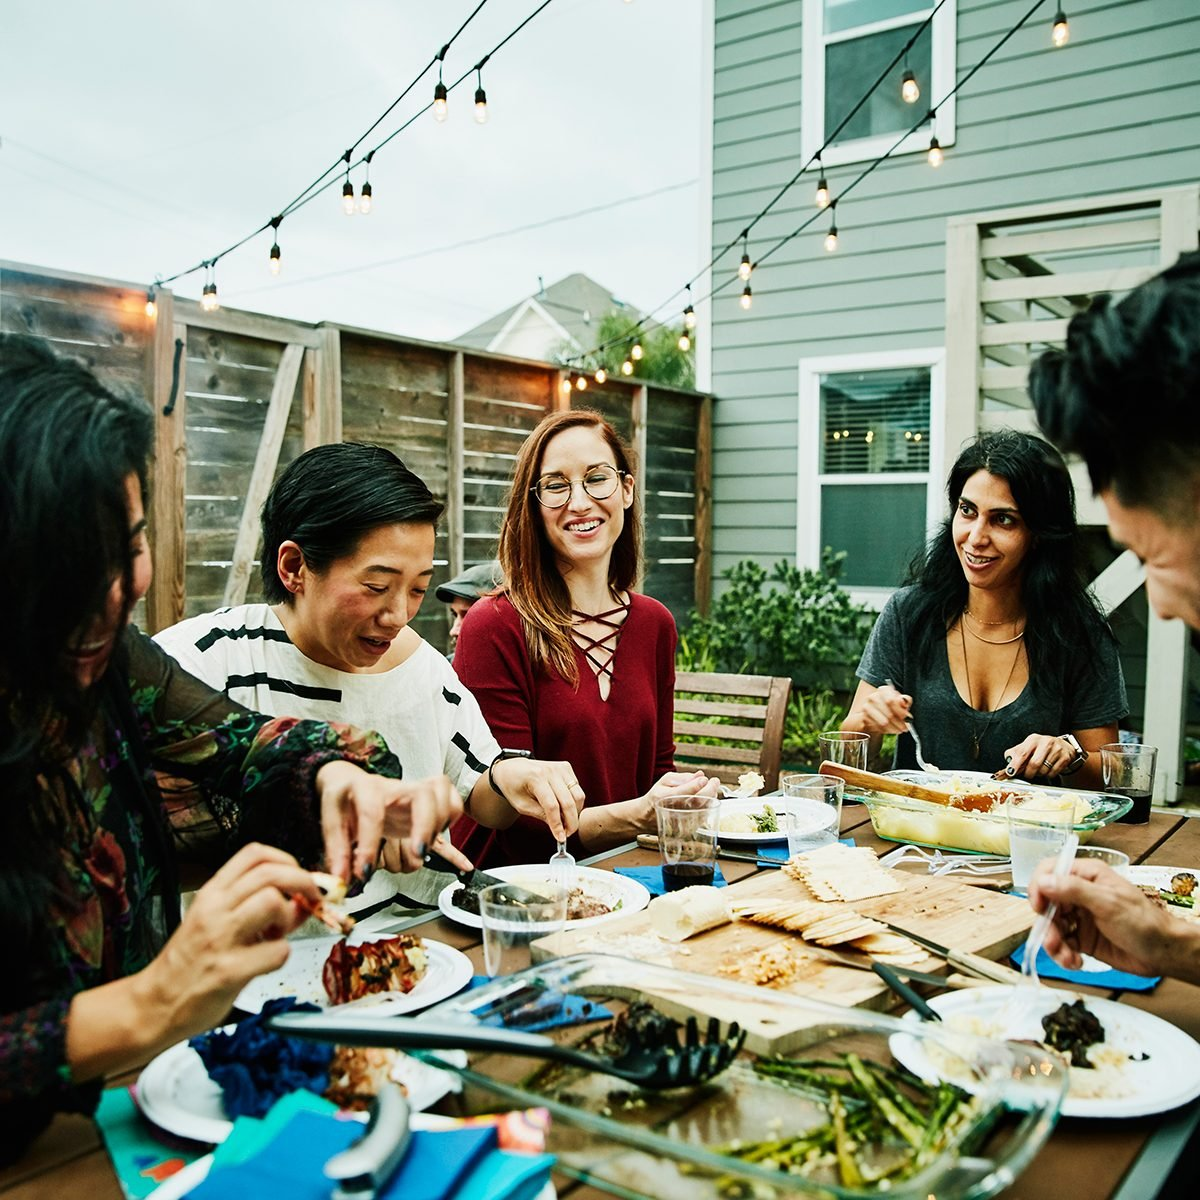 Smiling and laughing friends sharing dinner at table in backyard